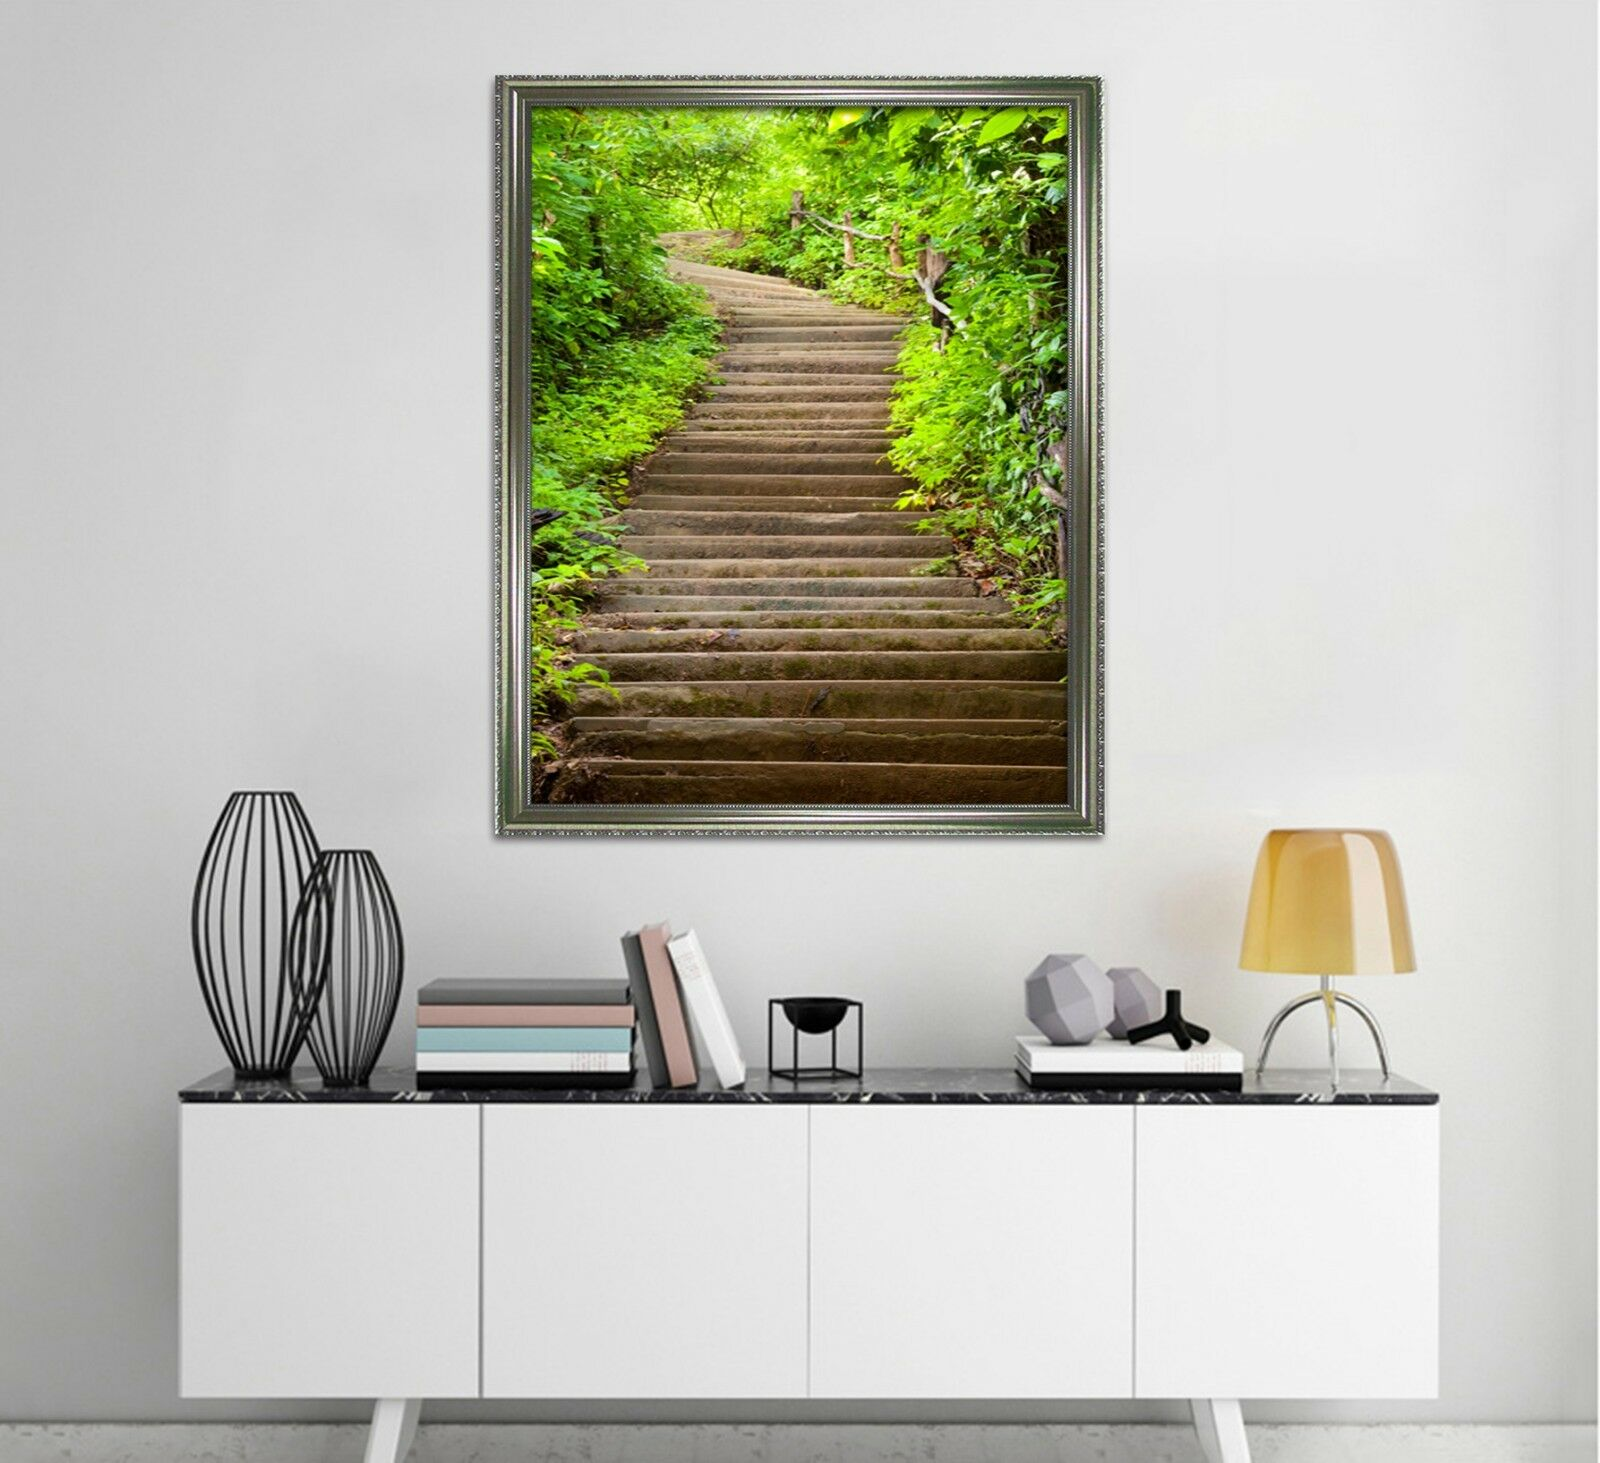 3D Green Plant Stairs 2 Framed Poster Home Decor Print Painting Art AJ WALLPAPER